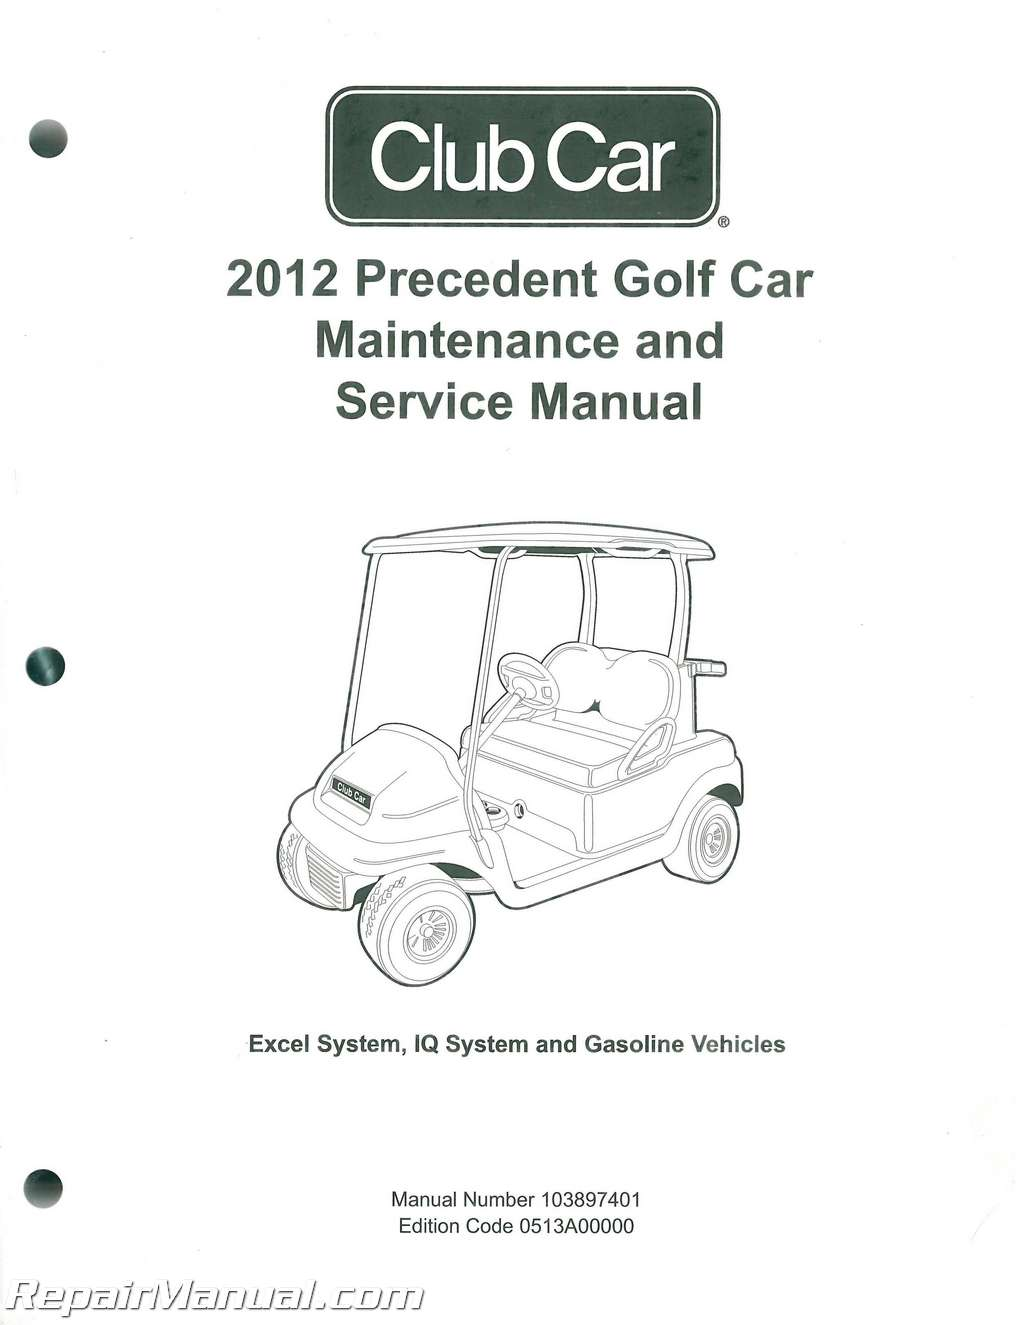 2012 Club Car Gasoline & Electric Precedent Golf Cart Maintenance Service Manual